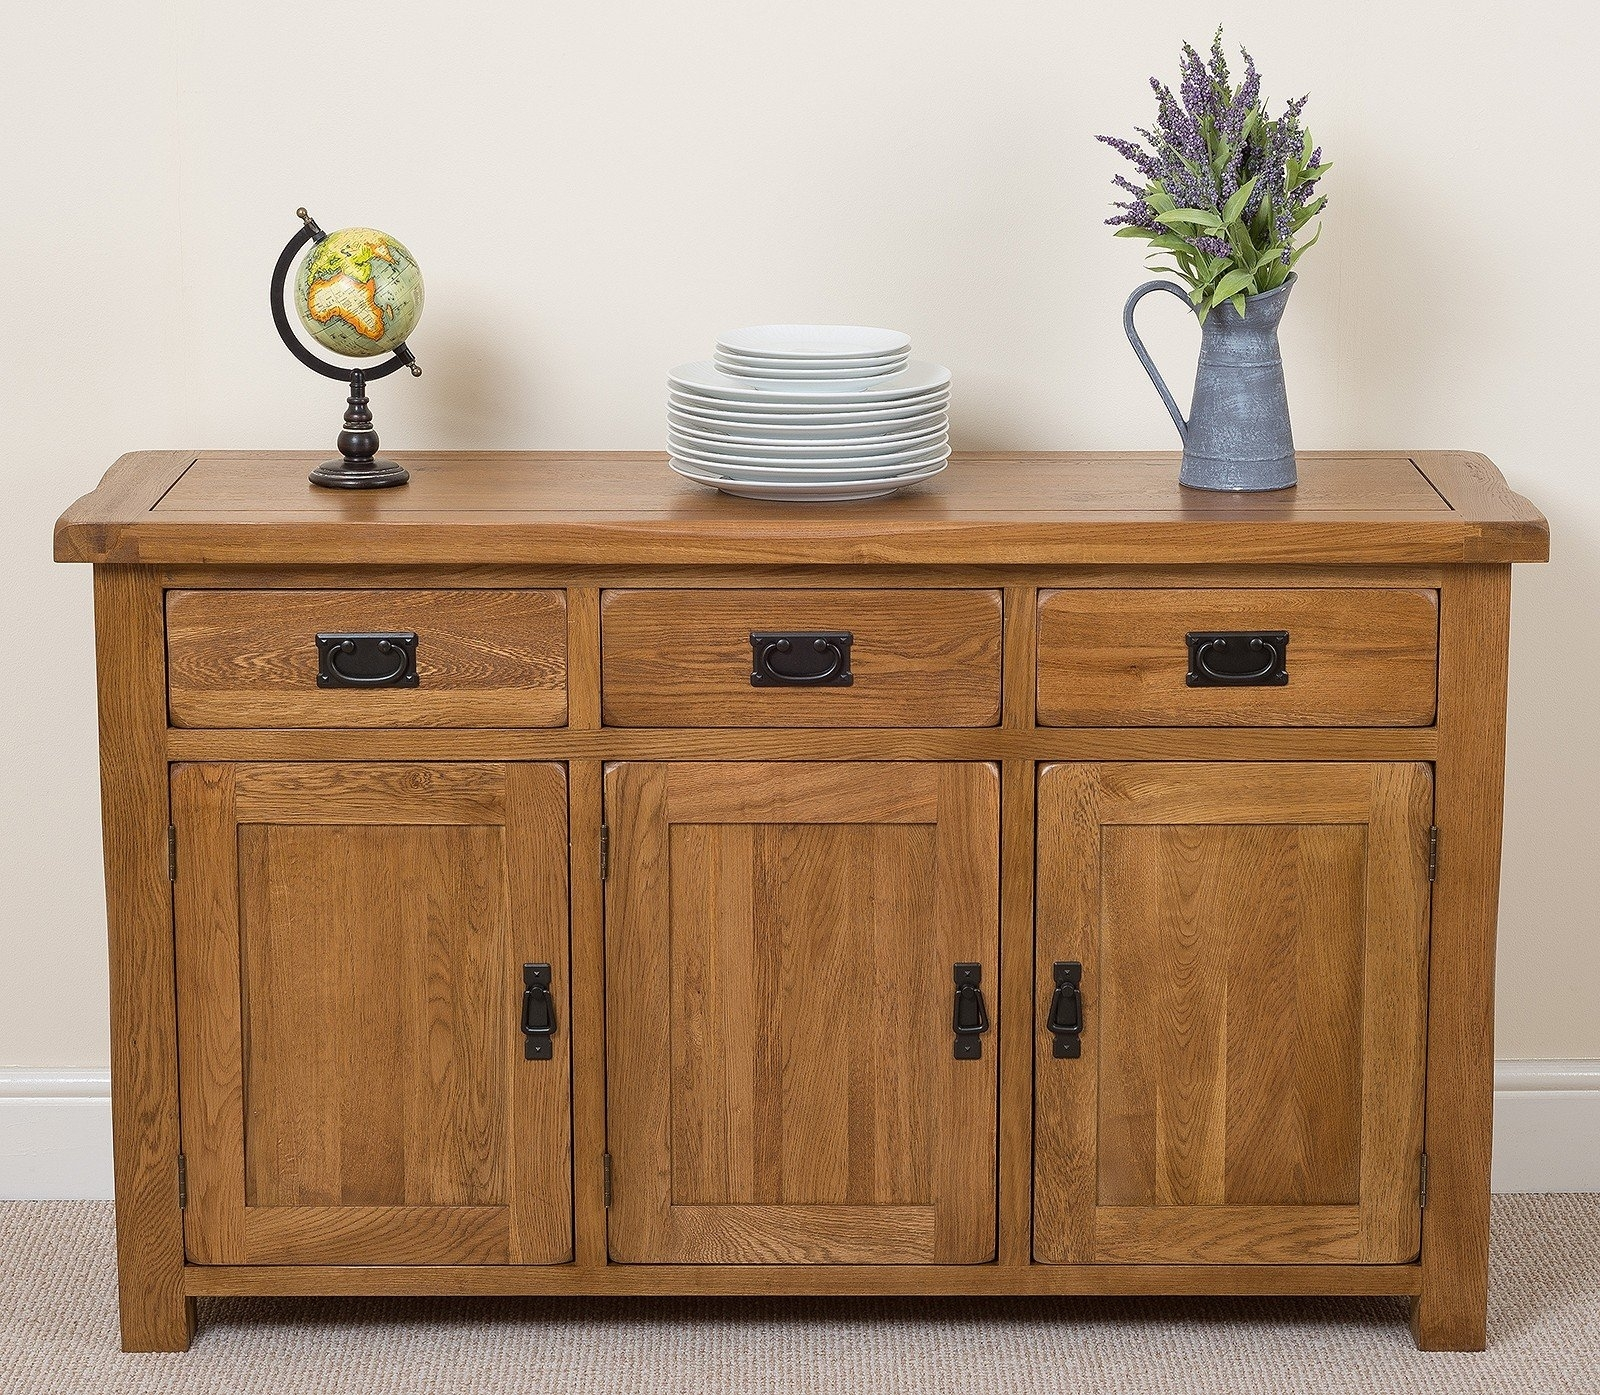 Brick & Barrow Hinson 3 Door 3 Drawer Sideboard | Wayfair.co.uk throughout 3-Door 3-Drawer Metal Inserts Sideboards (Image 4 of 30)